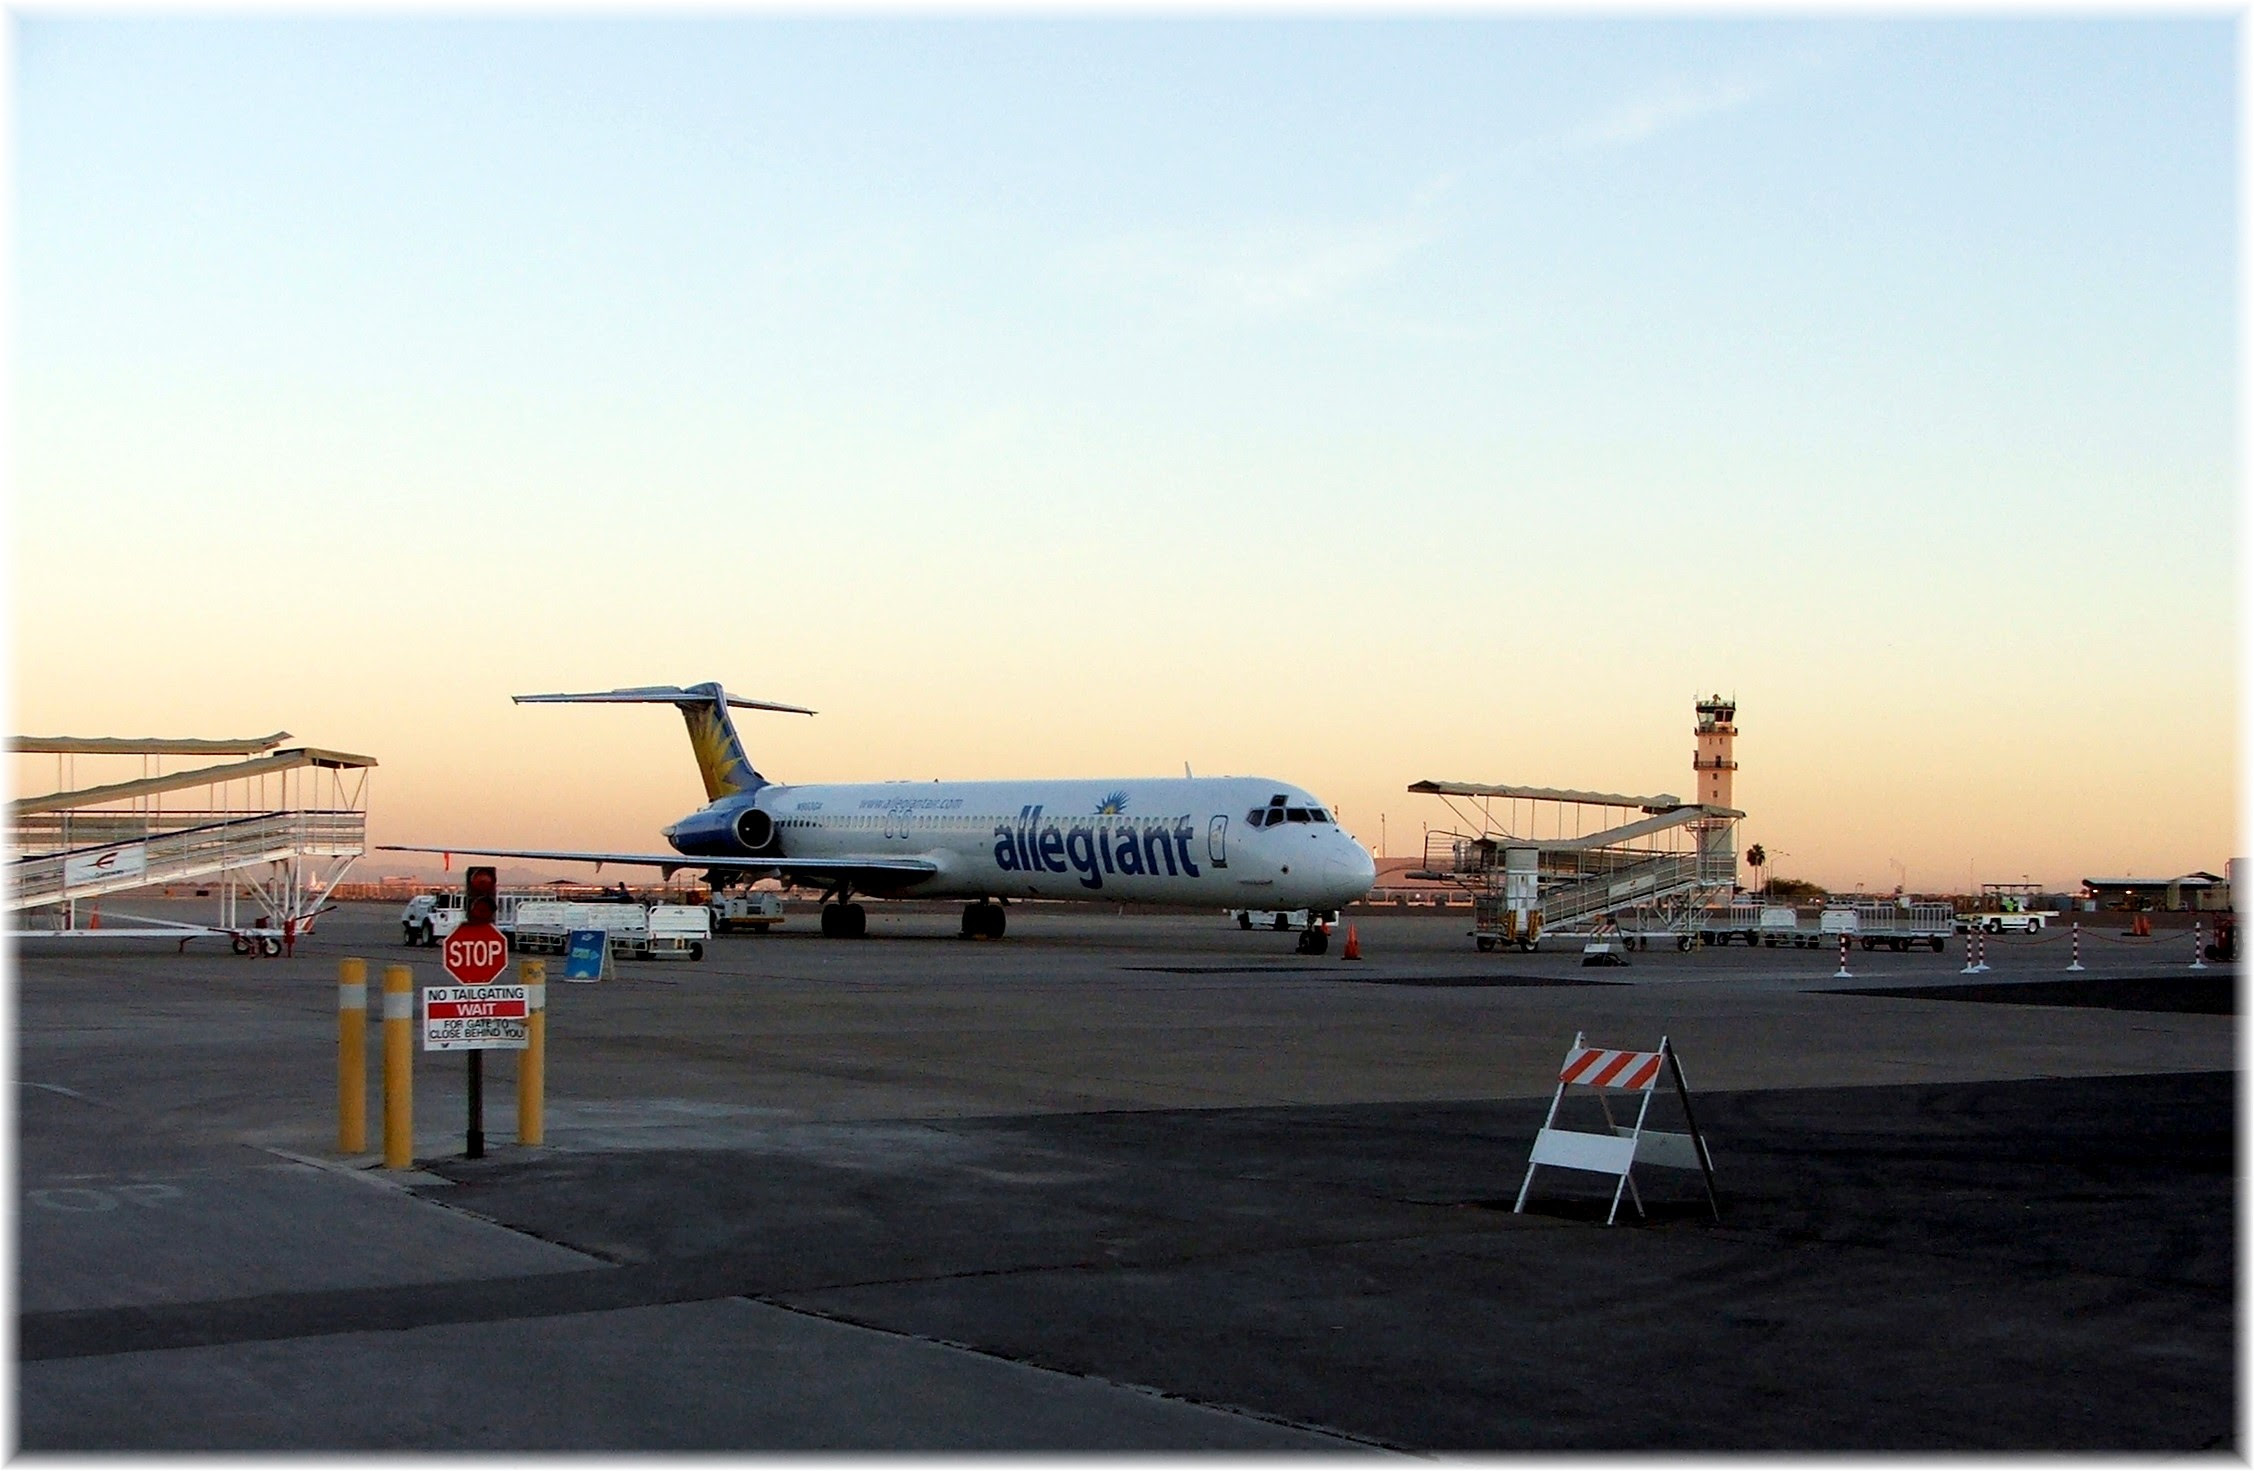 Two New Hangars To Be Built At Phoenix Mesa Gateway Airport